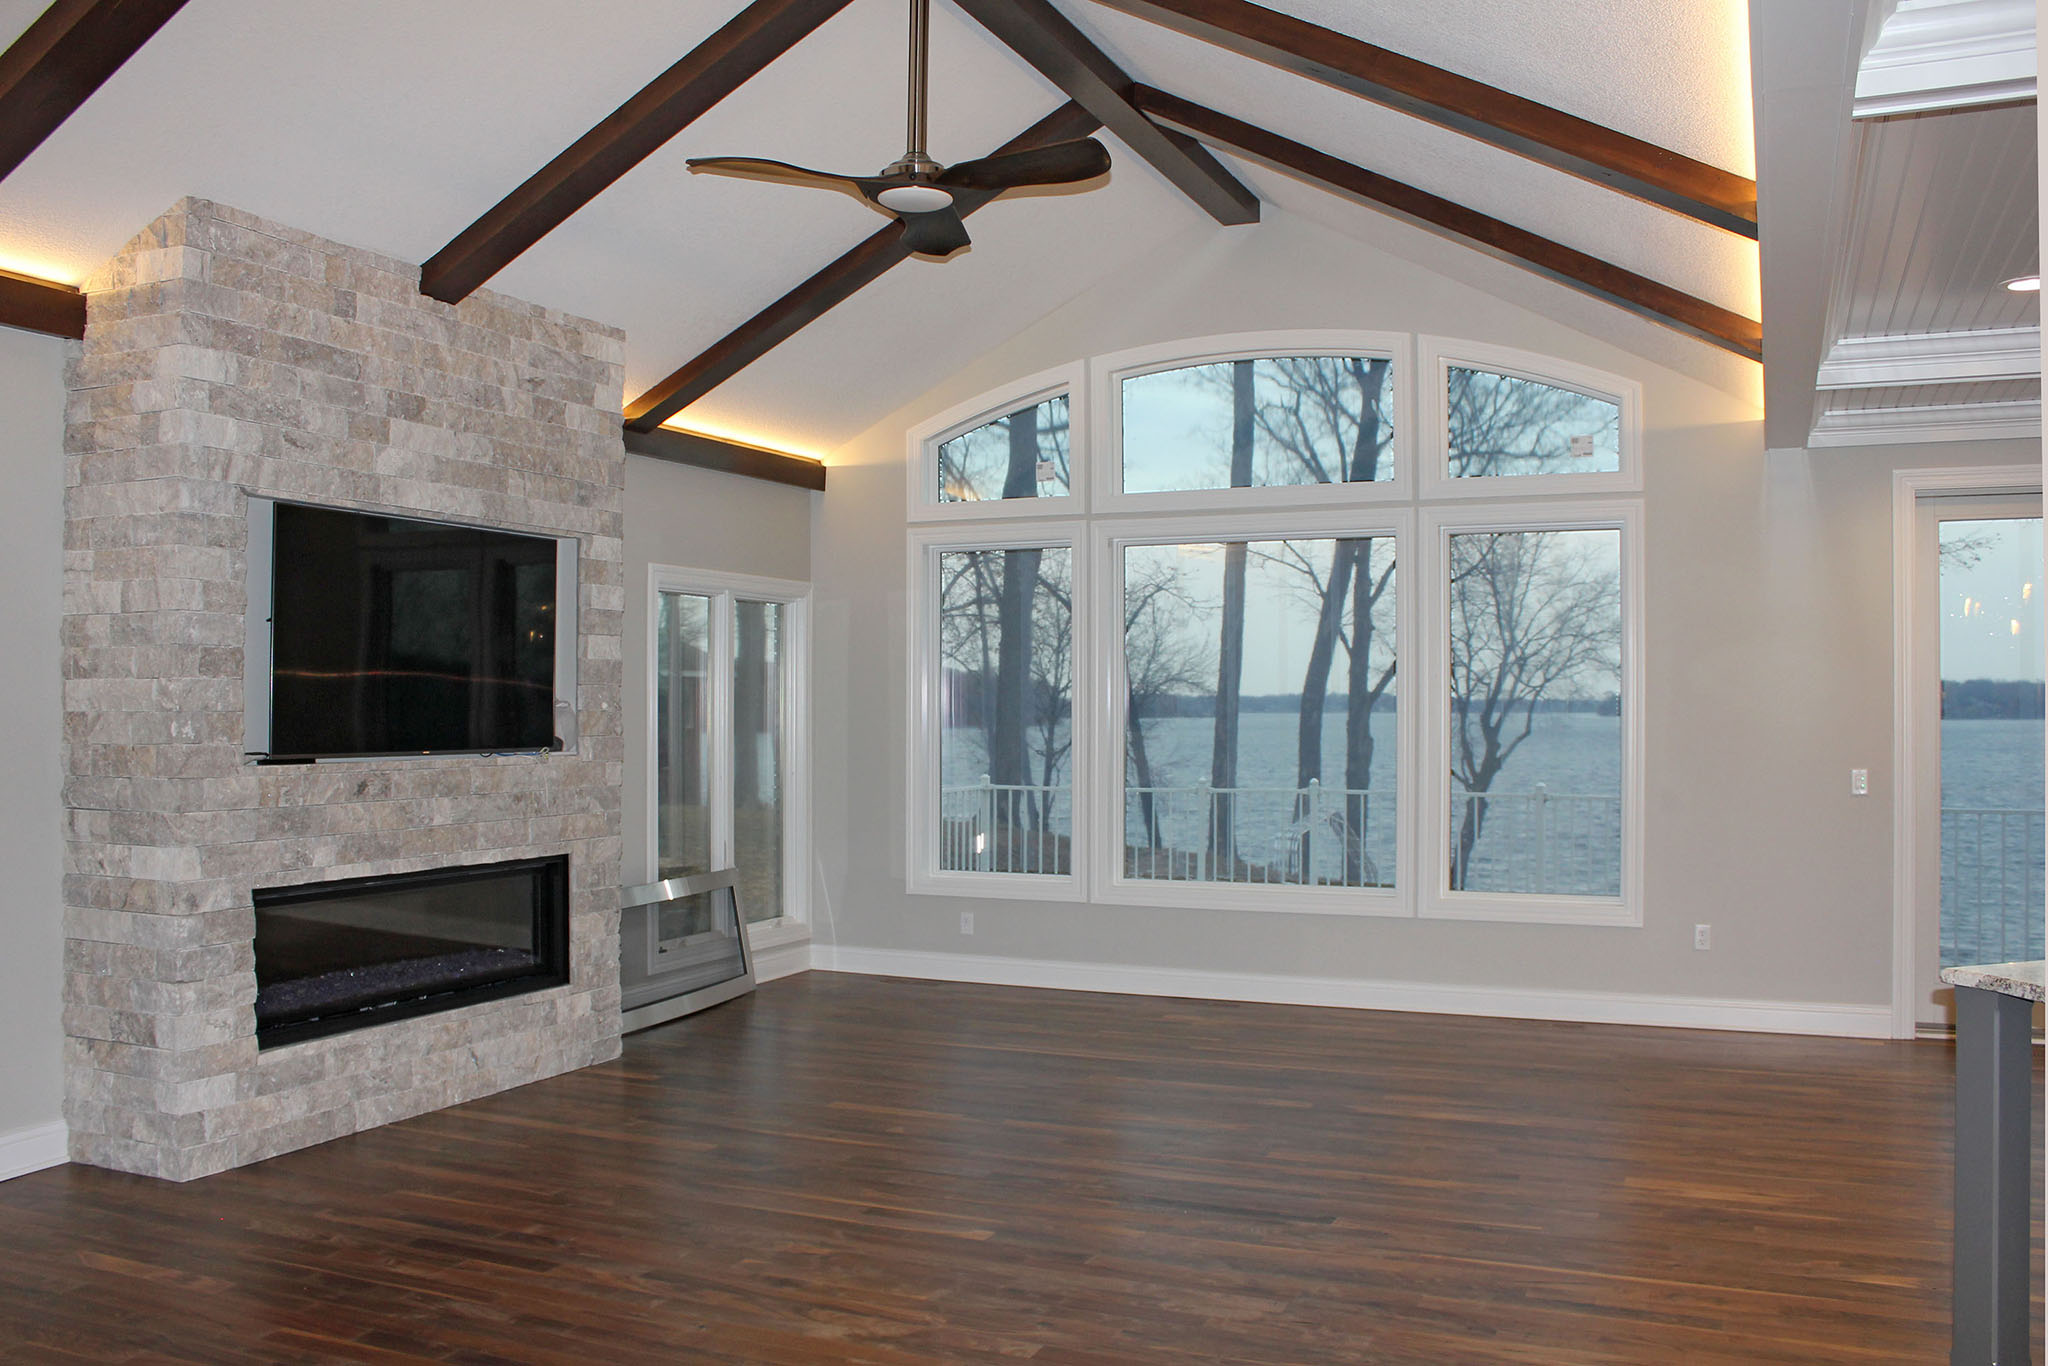 Great room with stone fireplace, wood beam ceiling and arched windows overlooking Lake Minnetonka